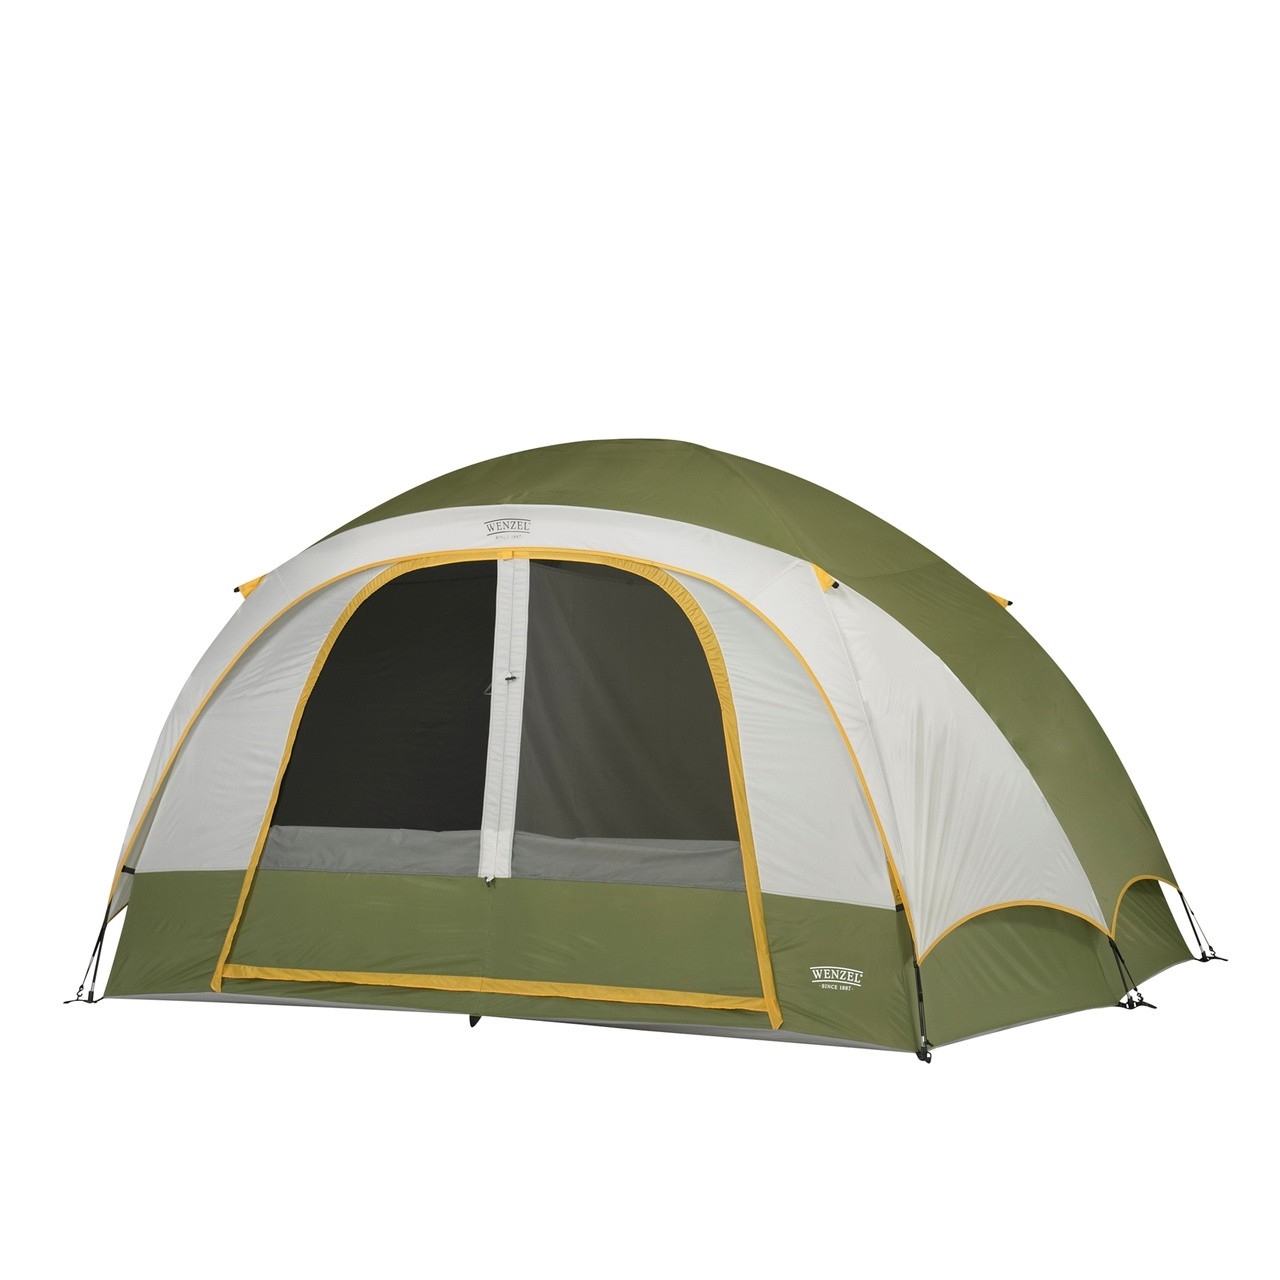 Wenzel Evergreen 6 tent, green and tan, setup with the rain fly on and the main screen door windows rolled down